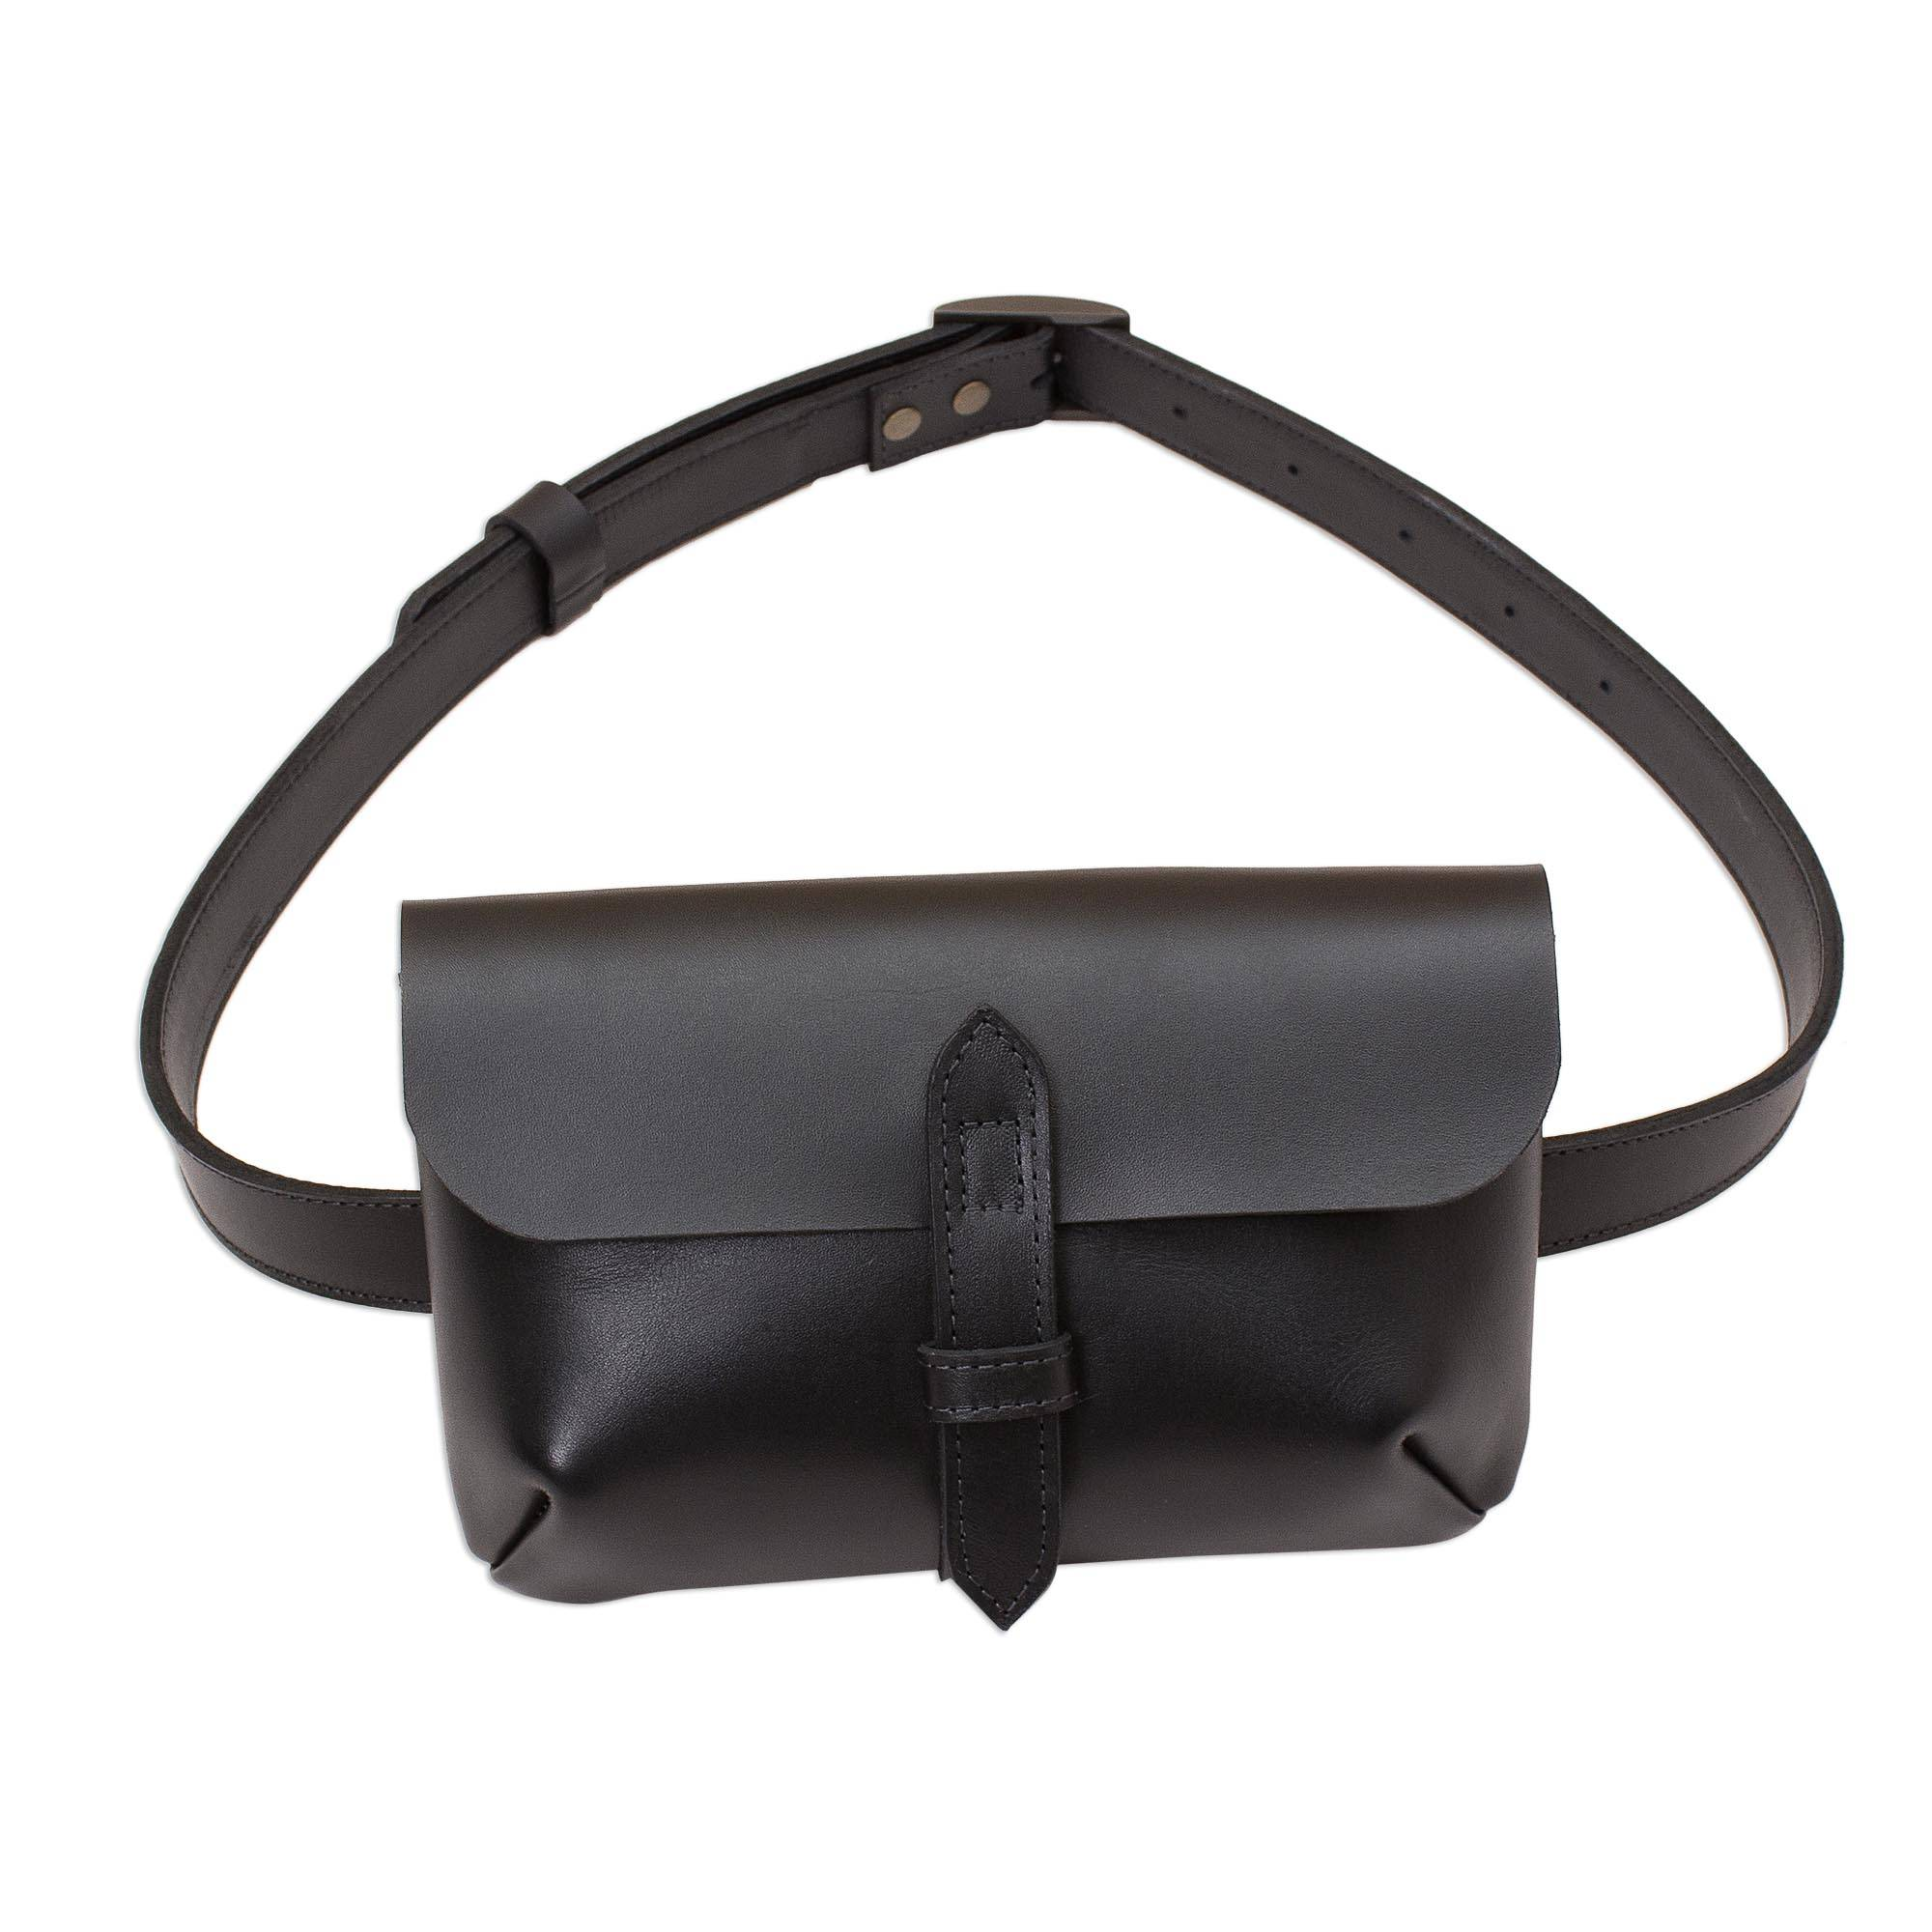 ef4e2321e0d6 Handmade Leather Waist Bag in Black from Peru, 'Experience in Black'